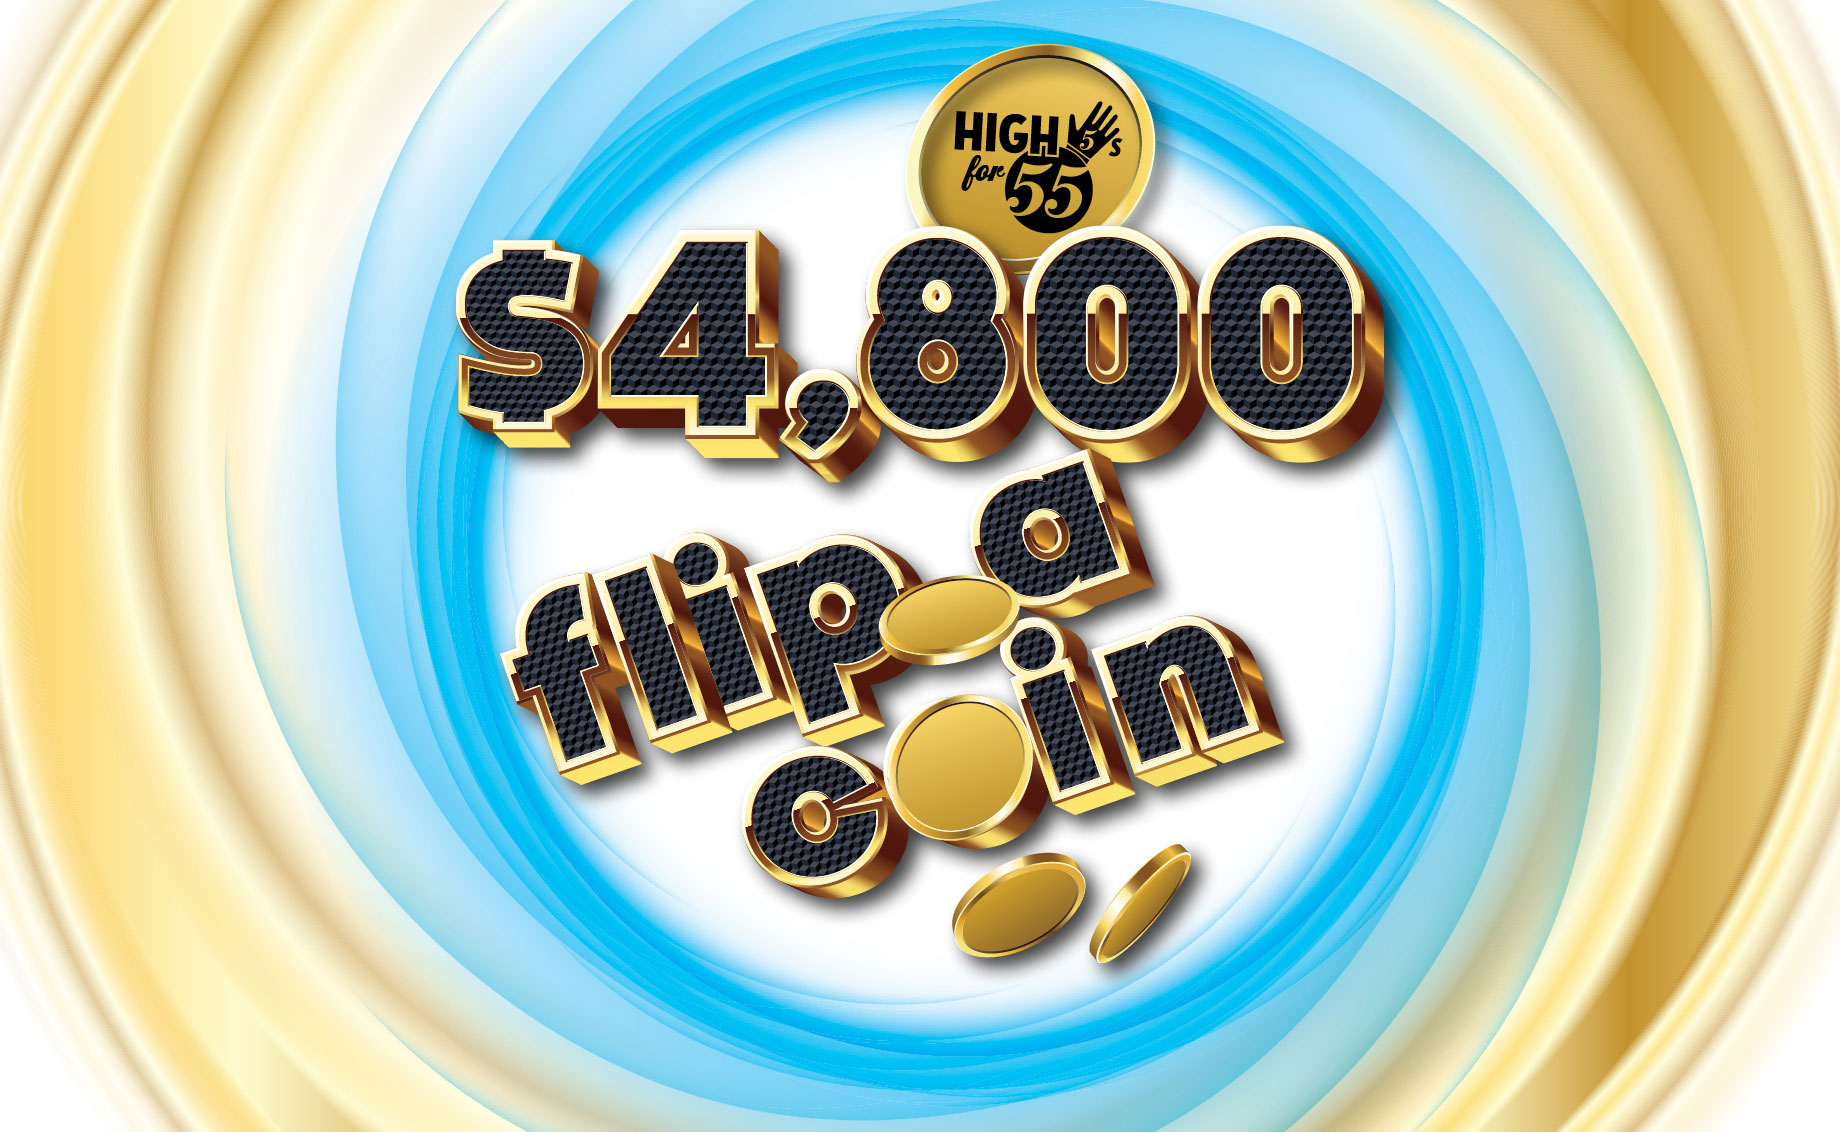 High 5's for 55 – $4,800 Flip a Coin